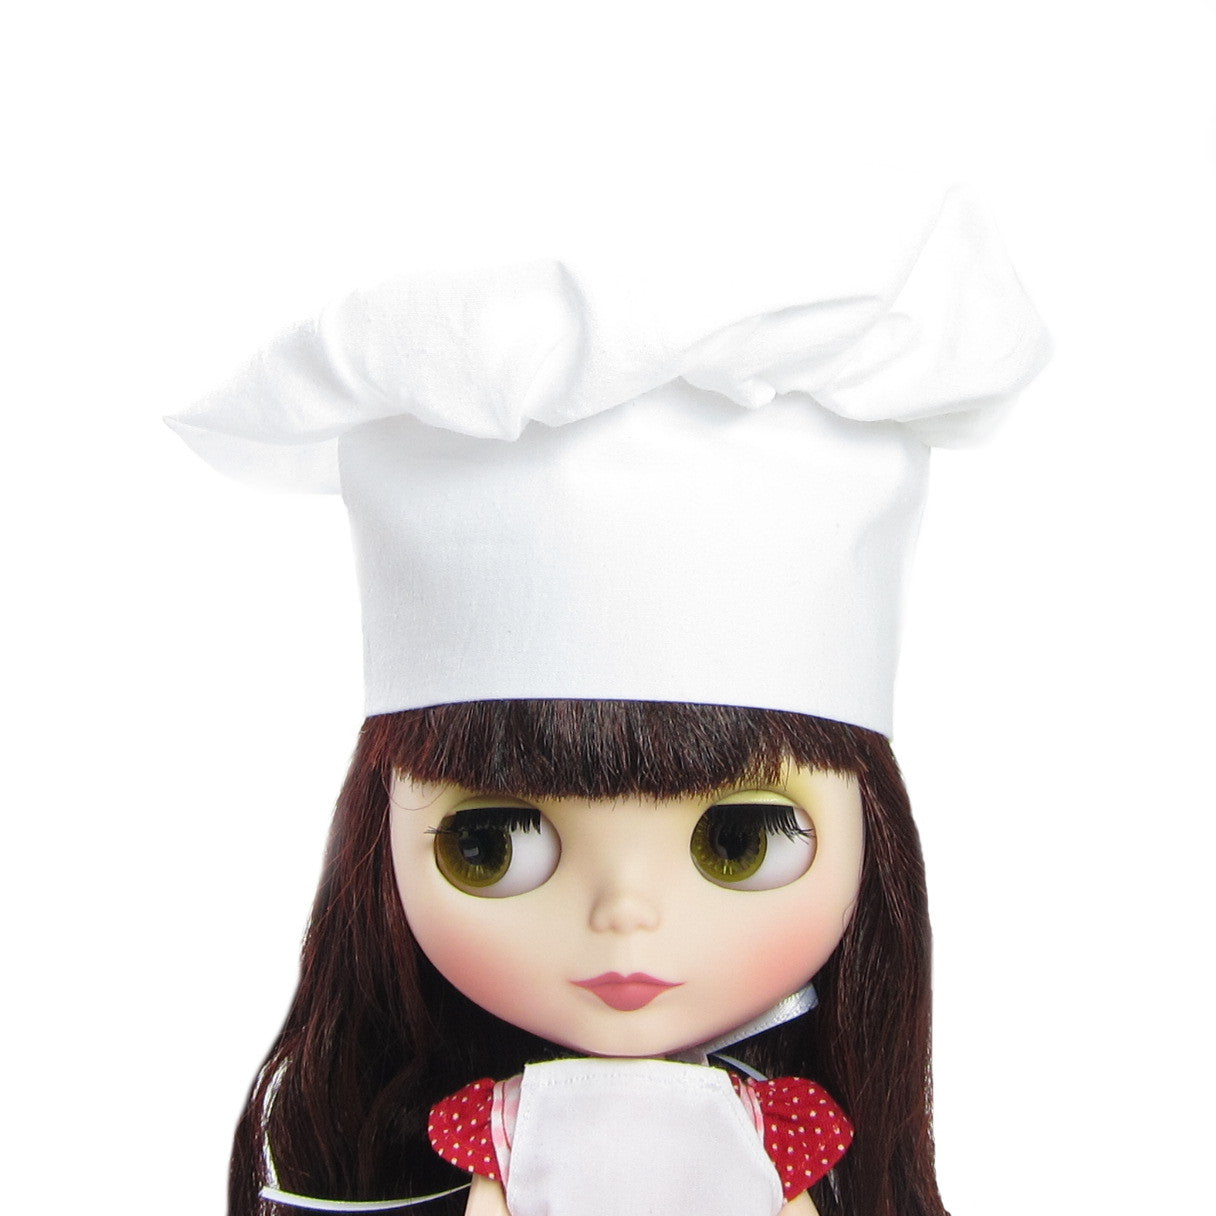 White chef's hat for Blythe